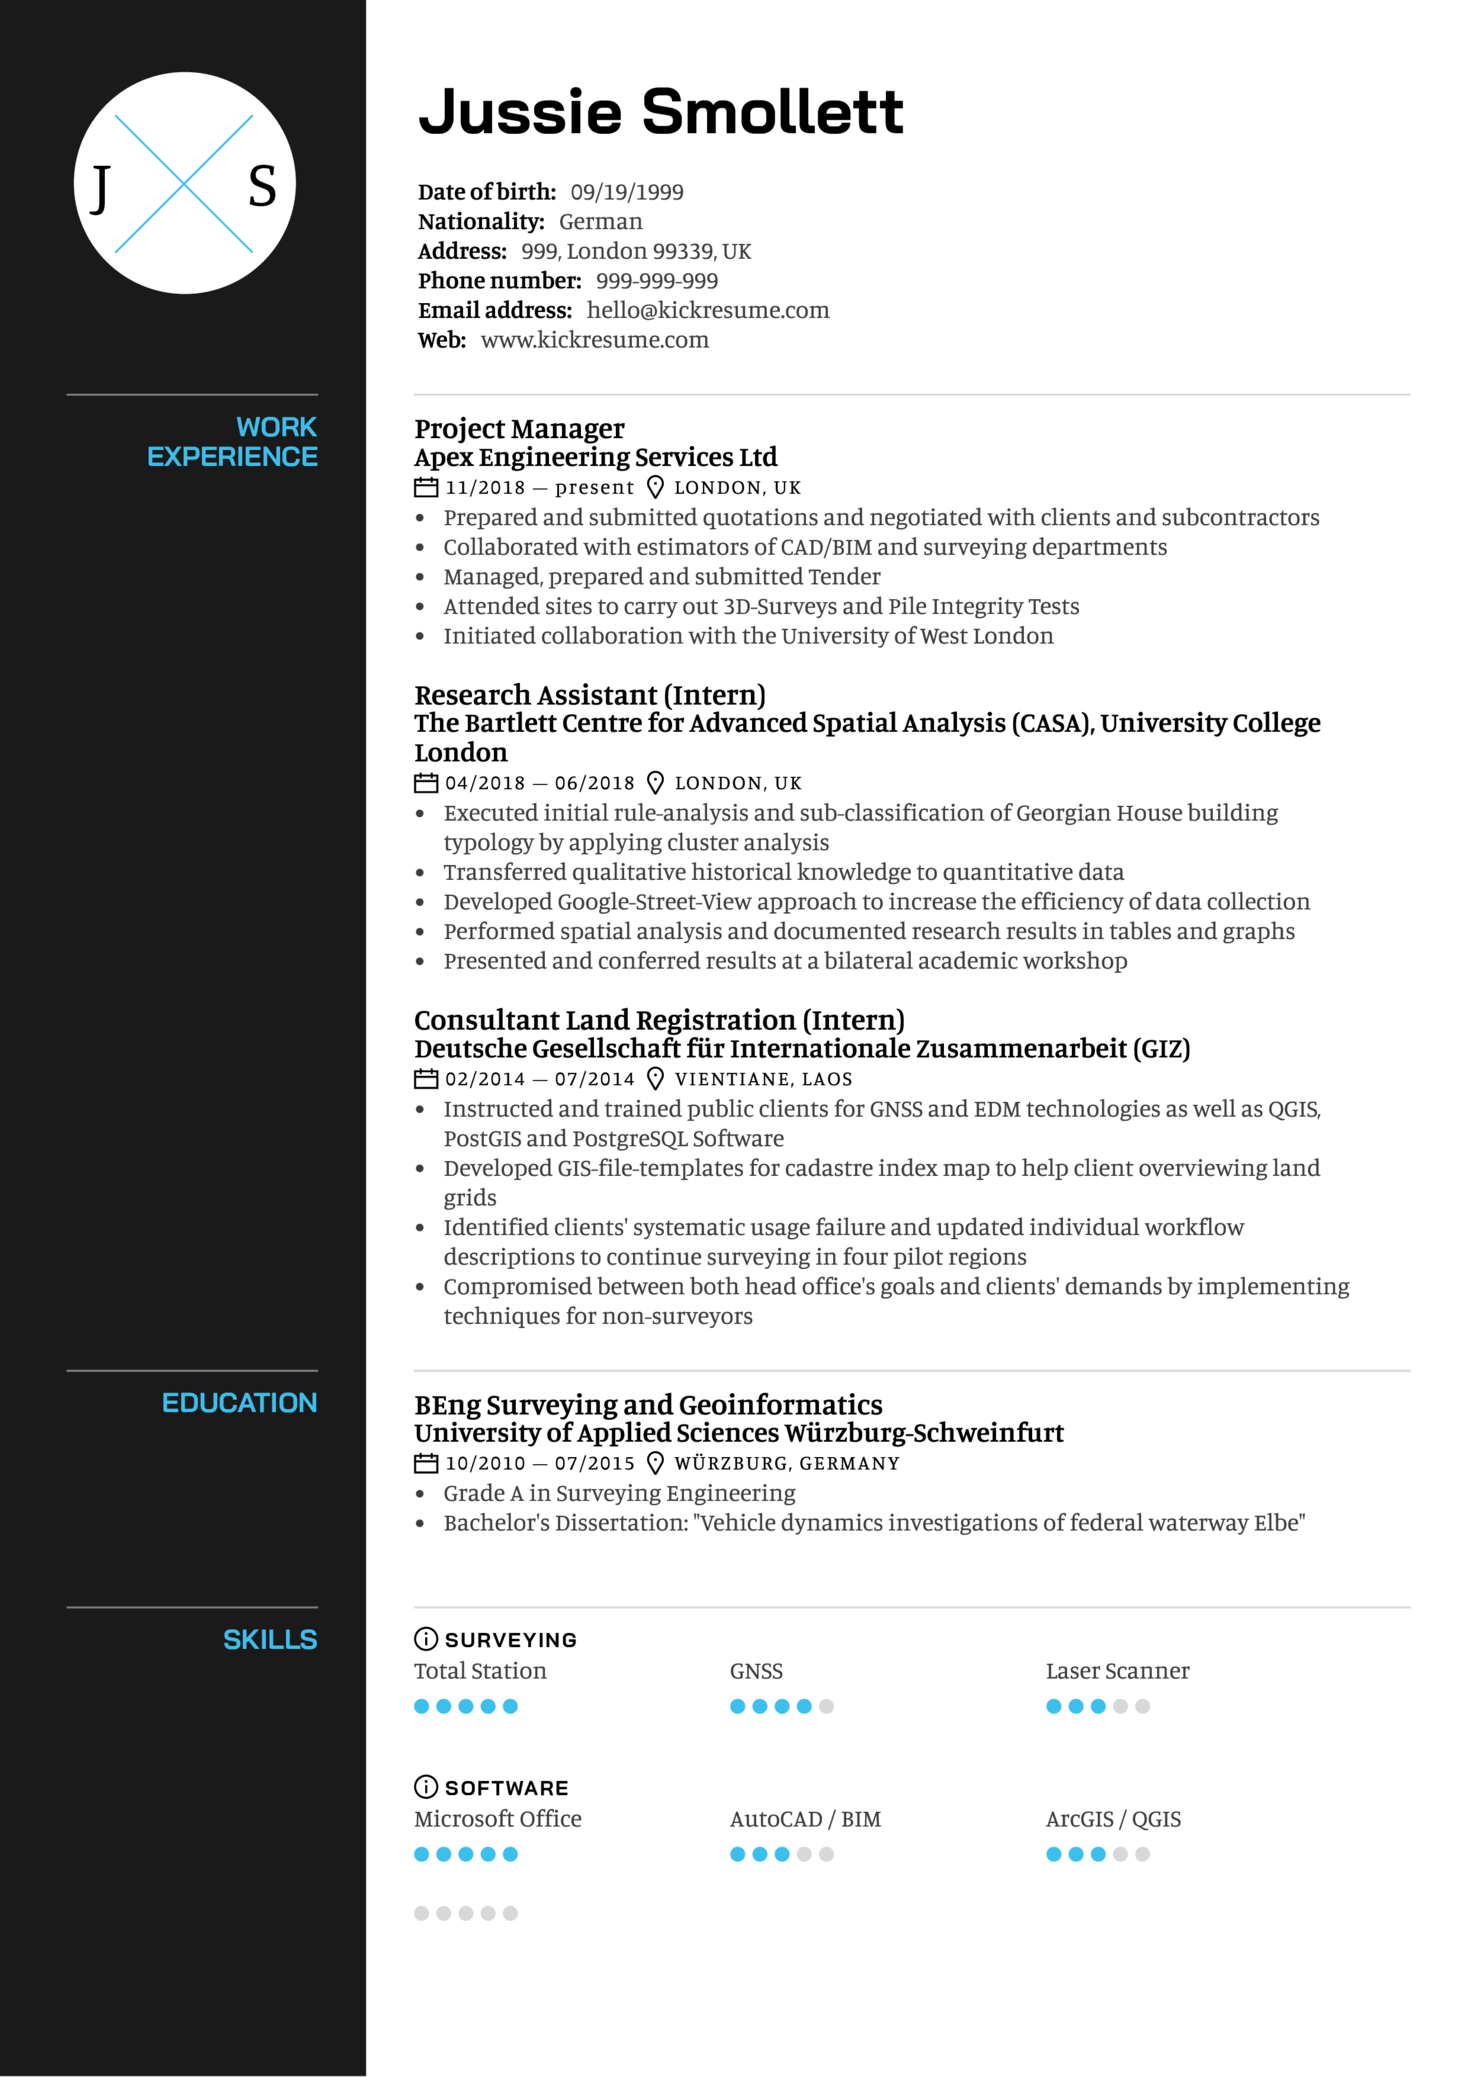 Project Manager Resume Sample (Parte 1)